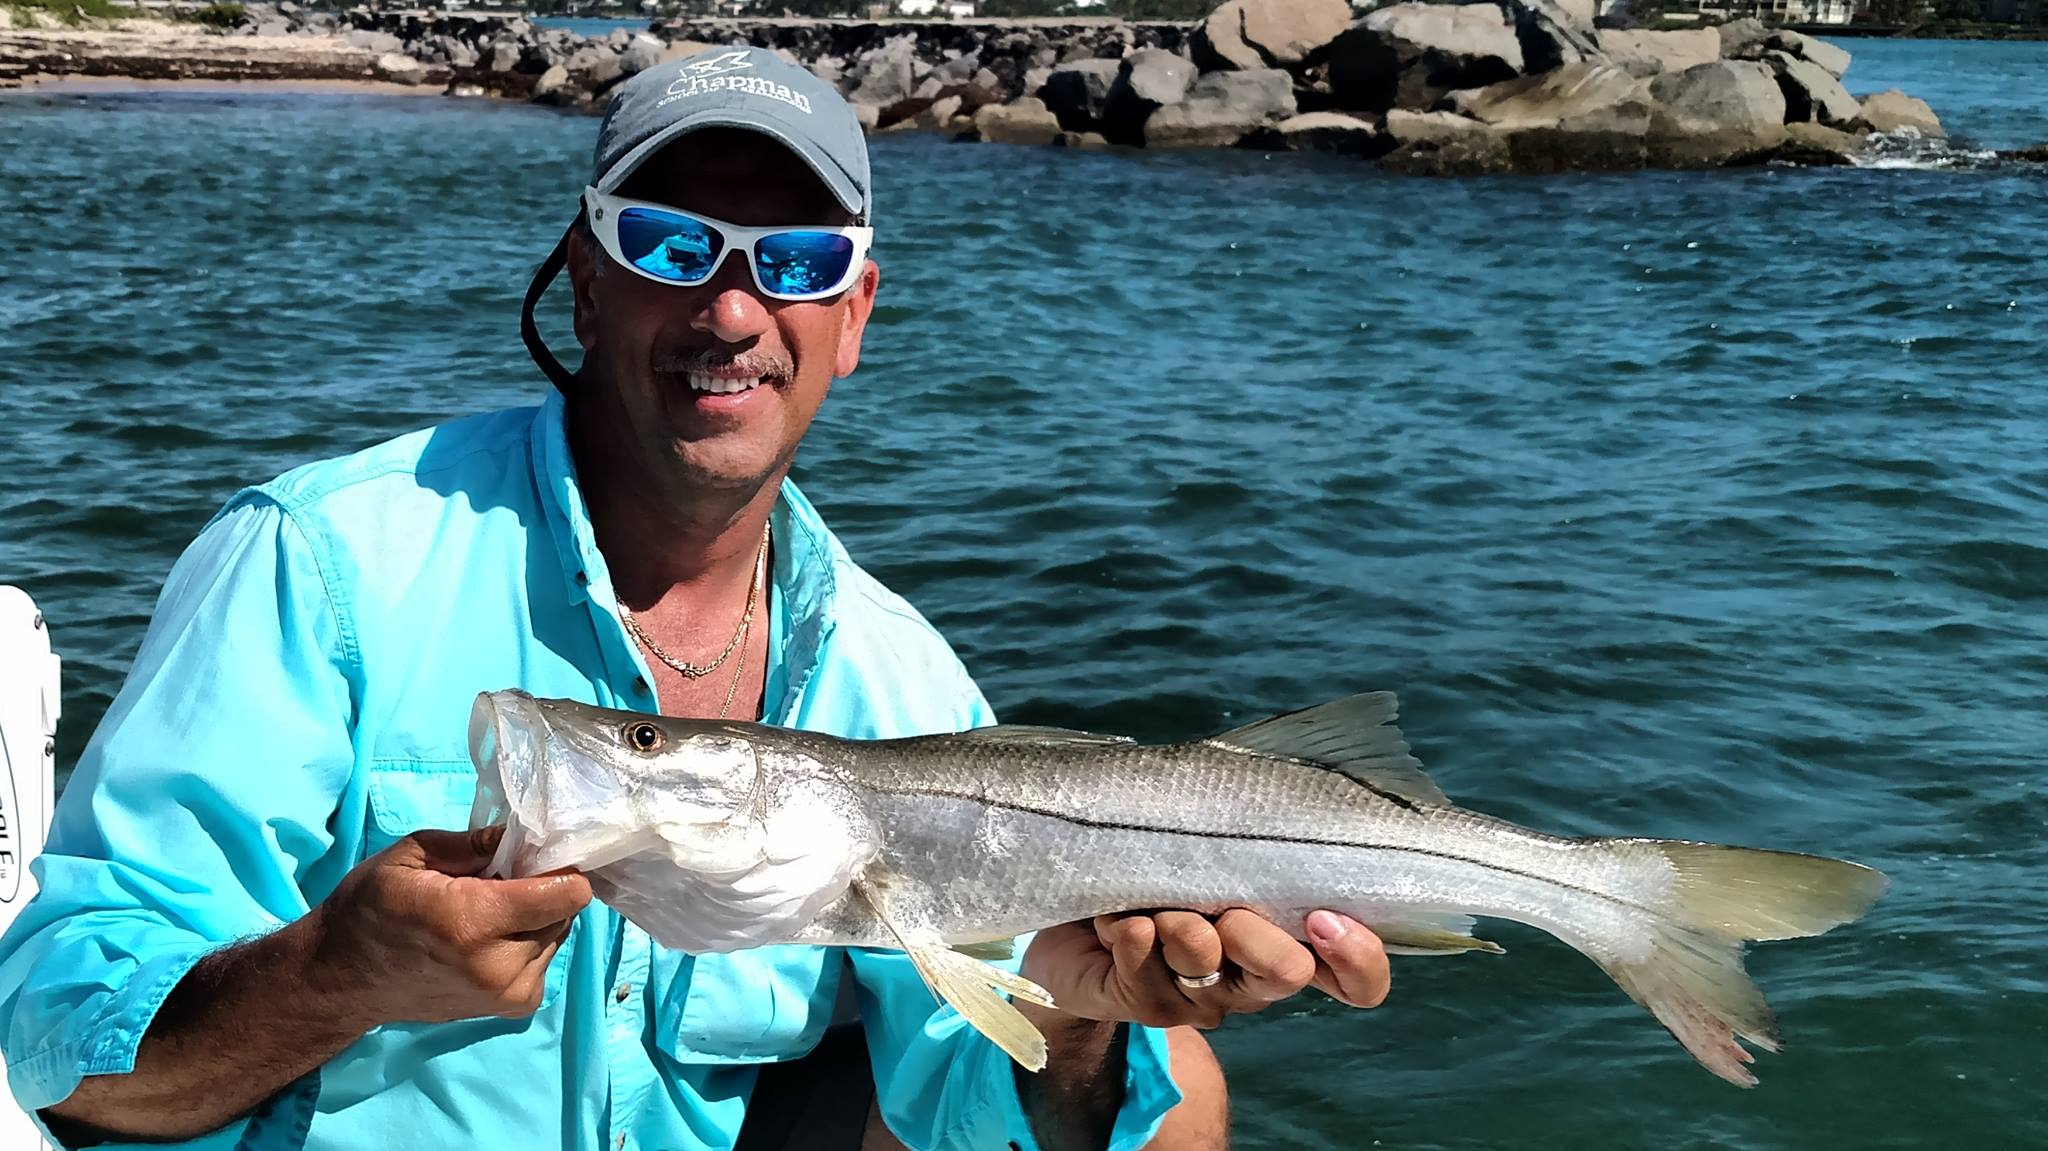 Waterfront properties real estate news information for Fishing for snook